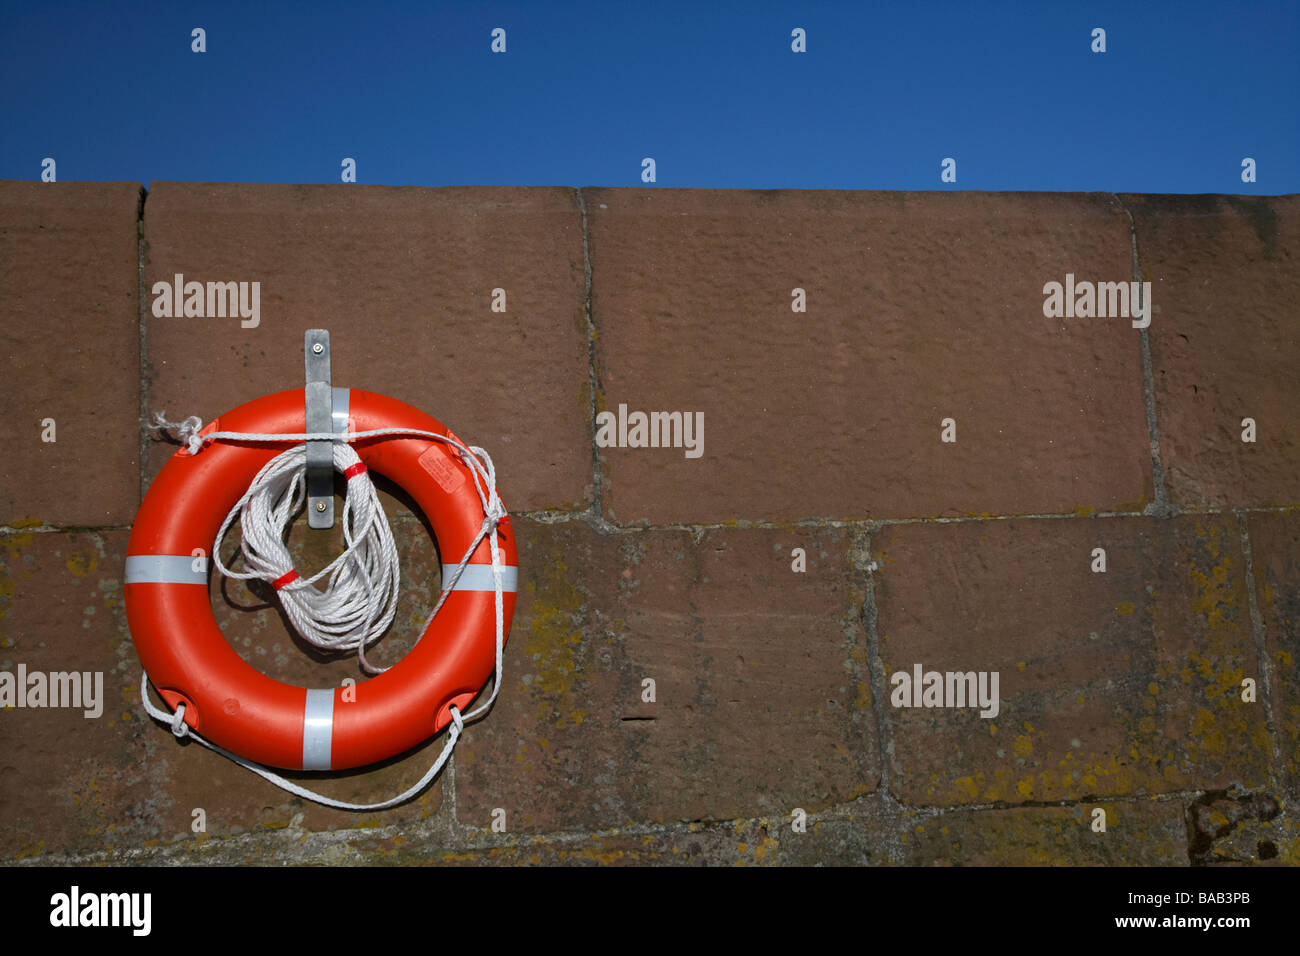 brand new bright red lifebelt with white rope hanging on a hanger on brown harbour wall with blue sky - Stock Image